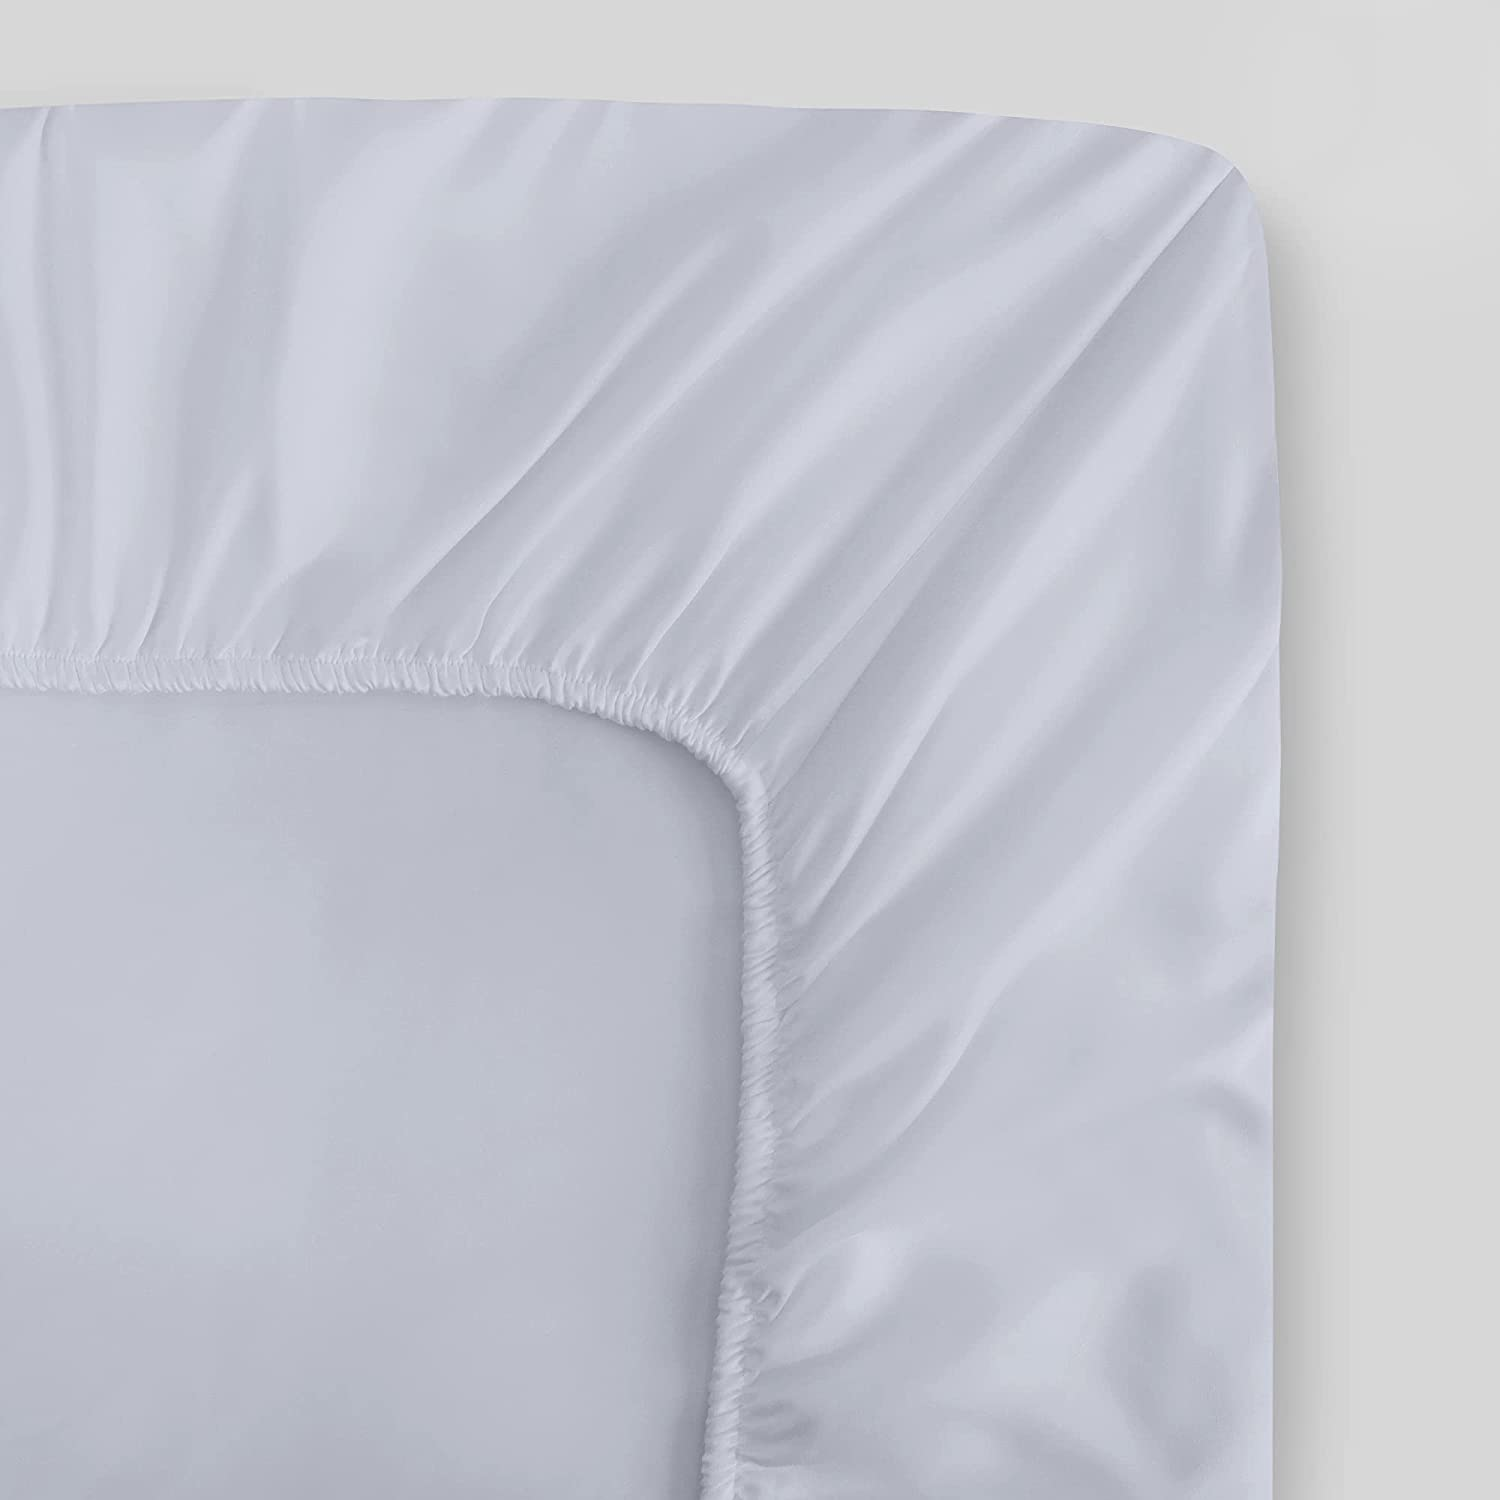 100% Denver Mall Organic Cotton King White Fitted Percale Sheet Daily bargain sale Weave 30